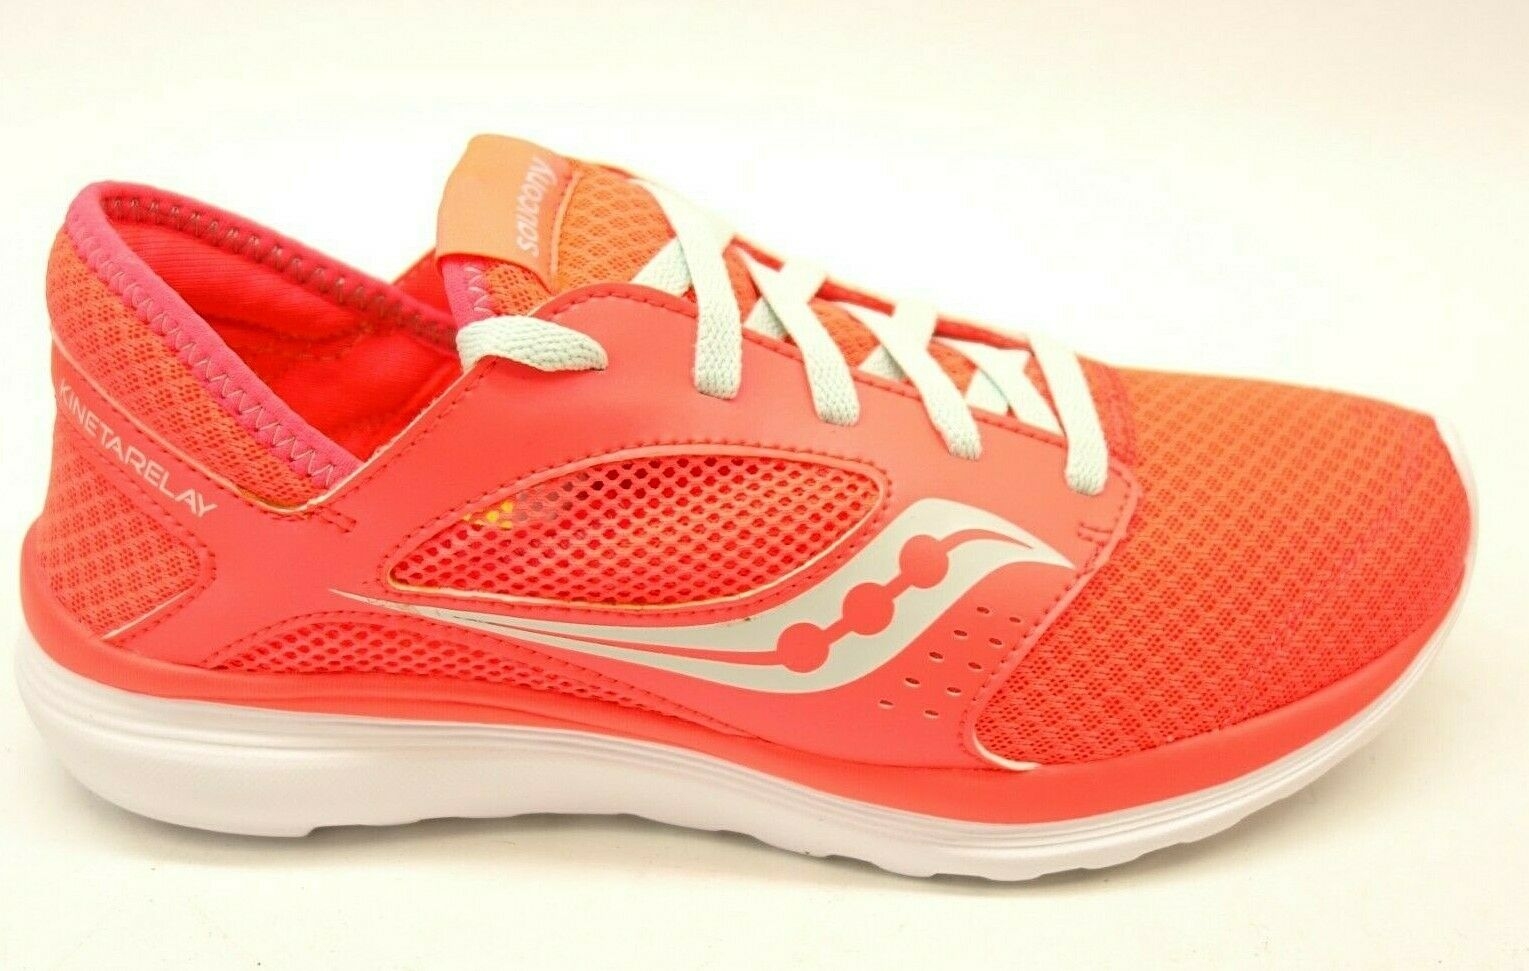 Saucony Womens Kineta Relay Neon Athletic Support Terrain Running shoes Sz 9.5